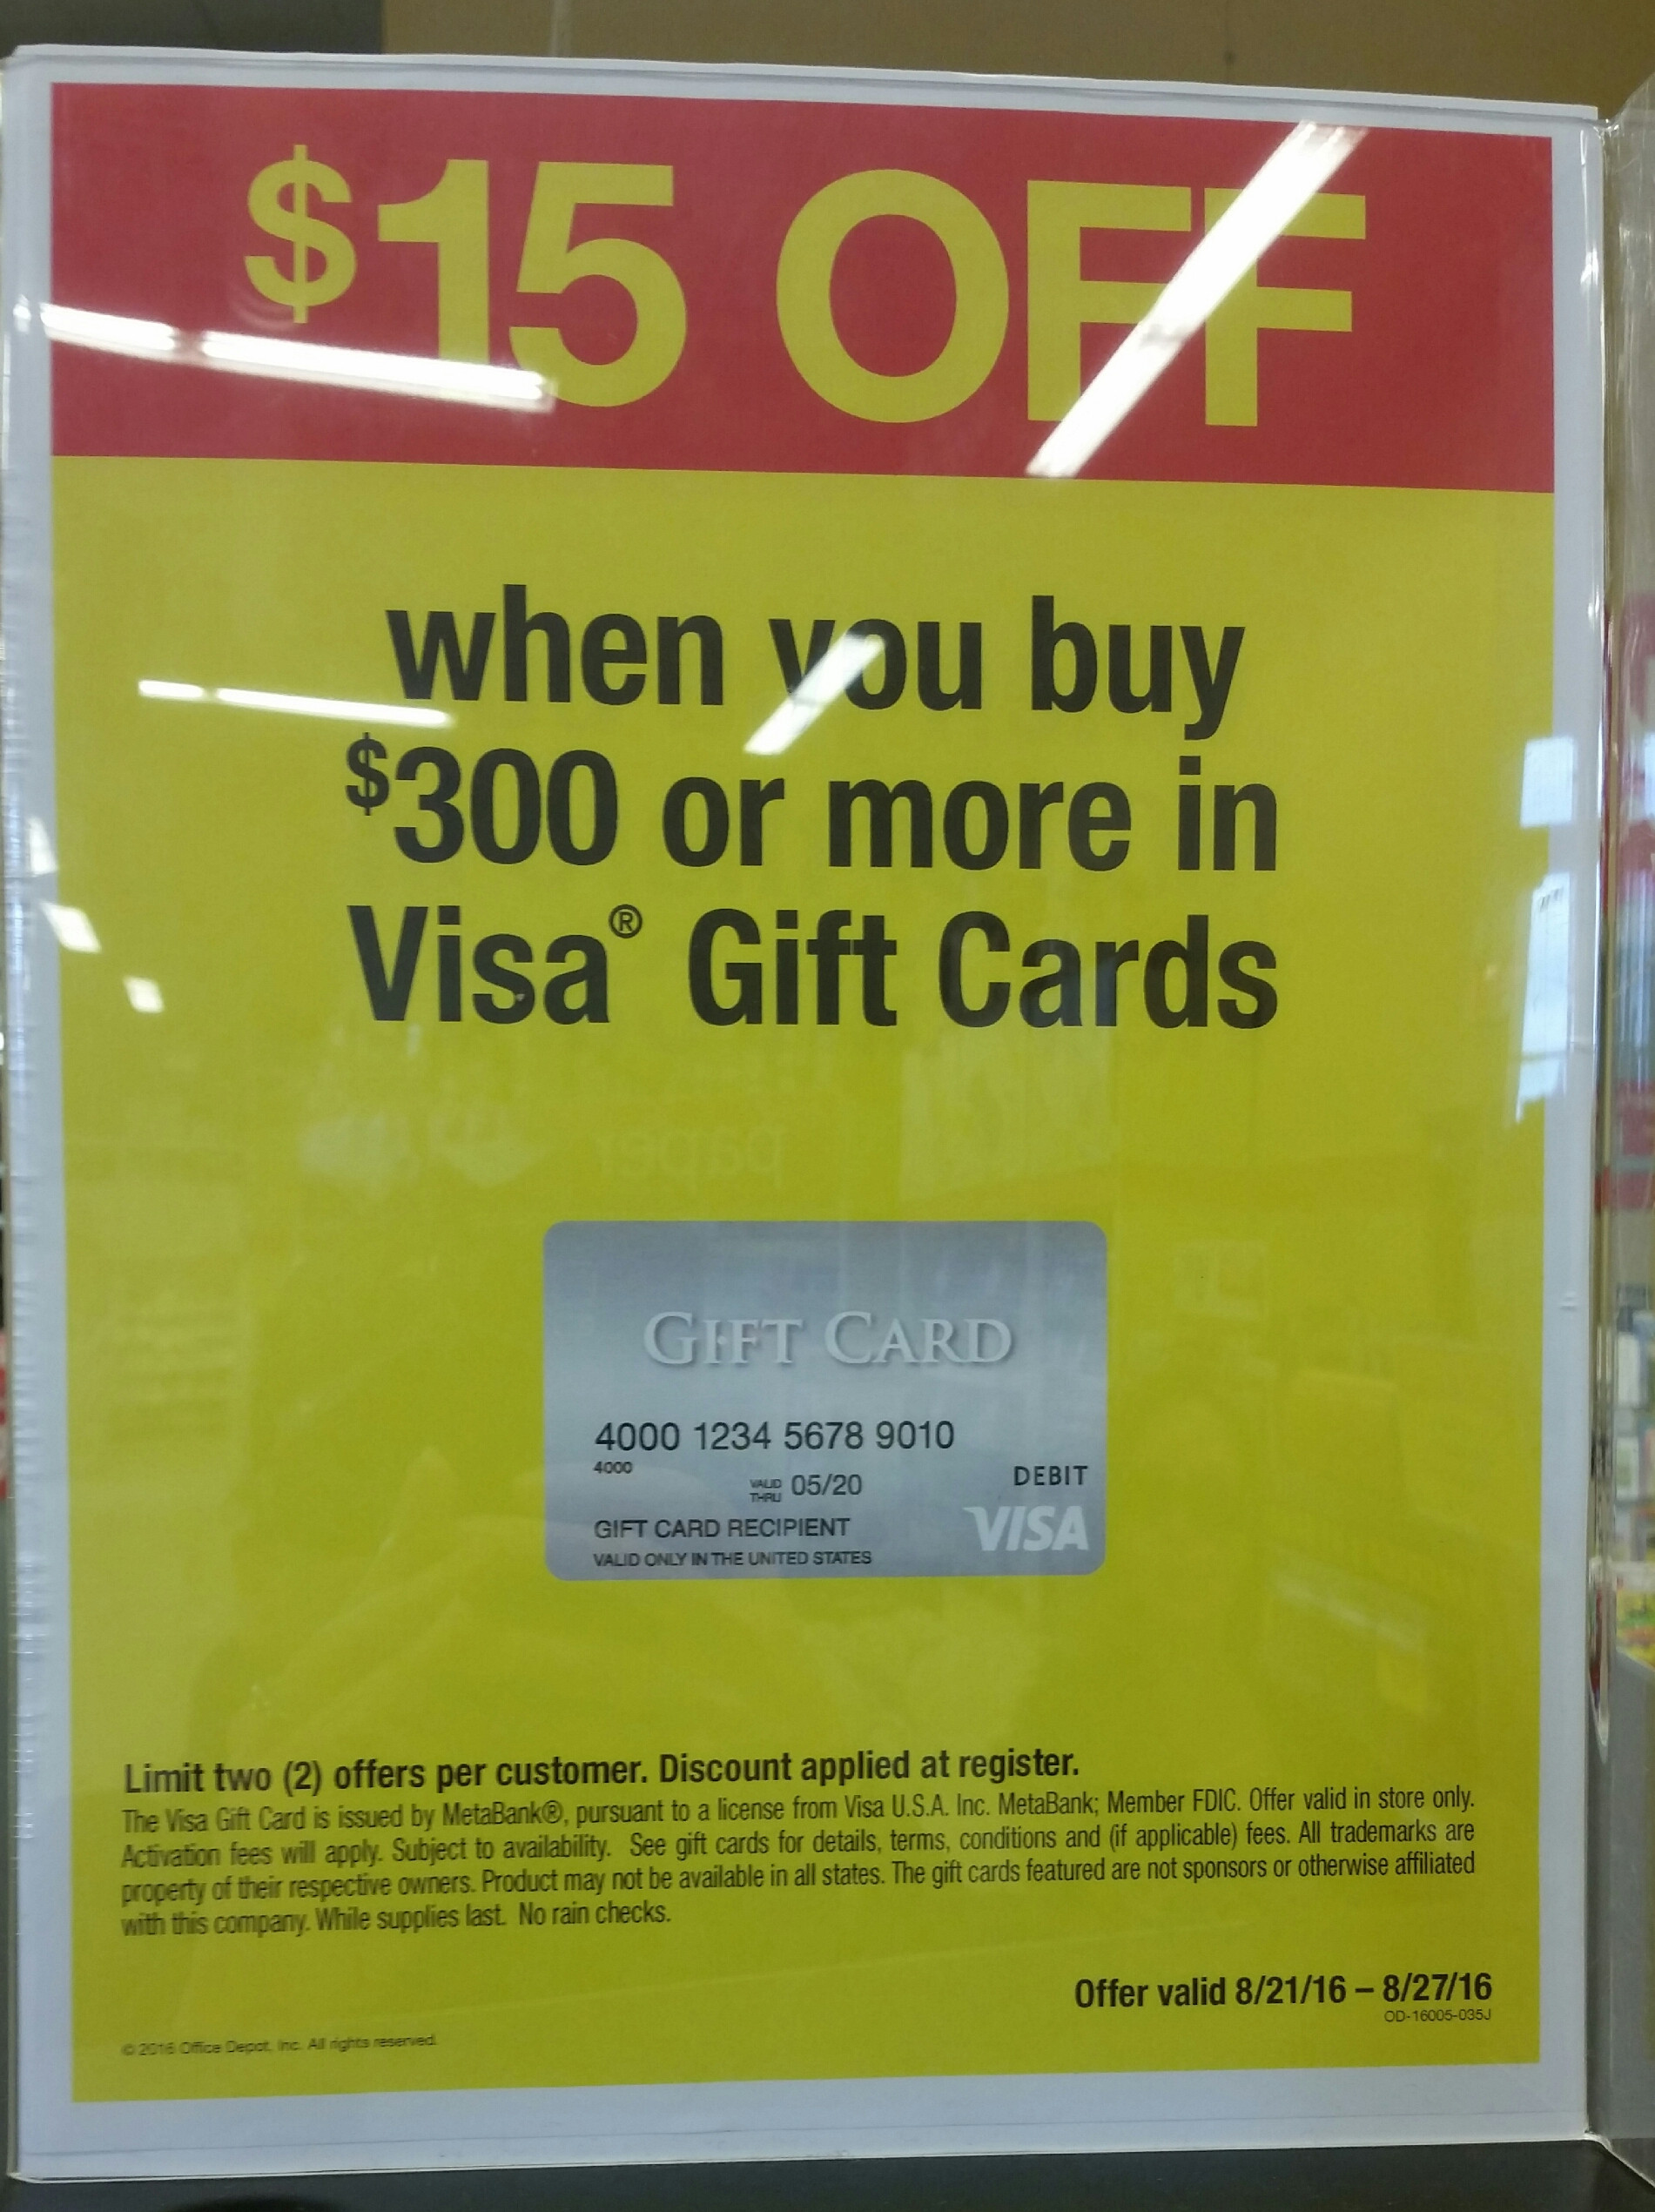 Highest Visa Gift Card Amount Beautiful $15 F $300 Purchase Visa Gift Cards at Ficemax